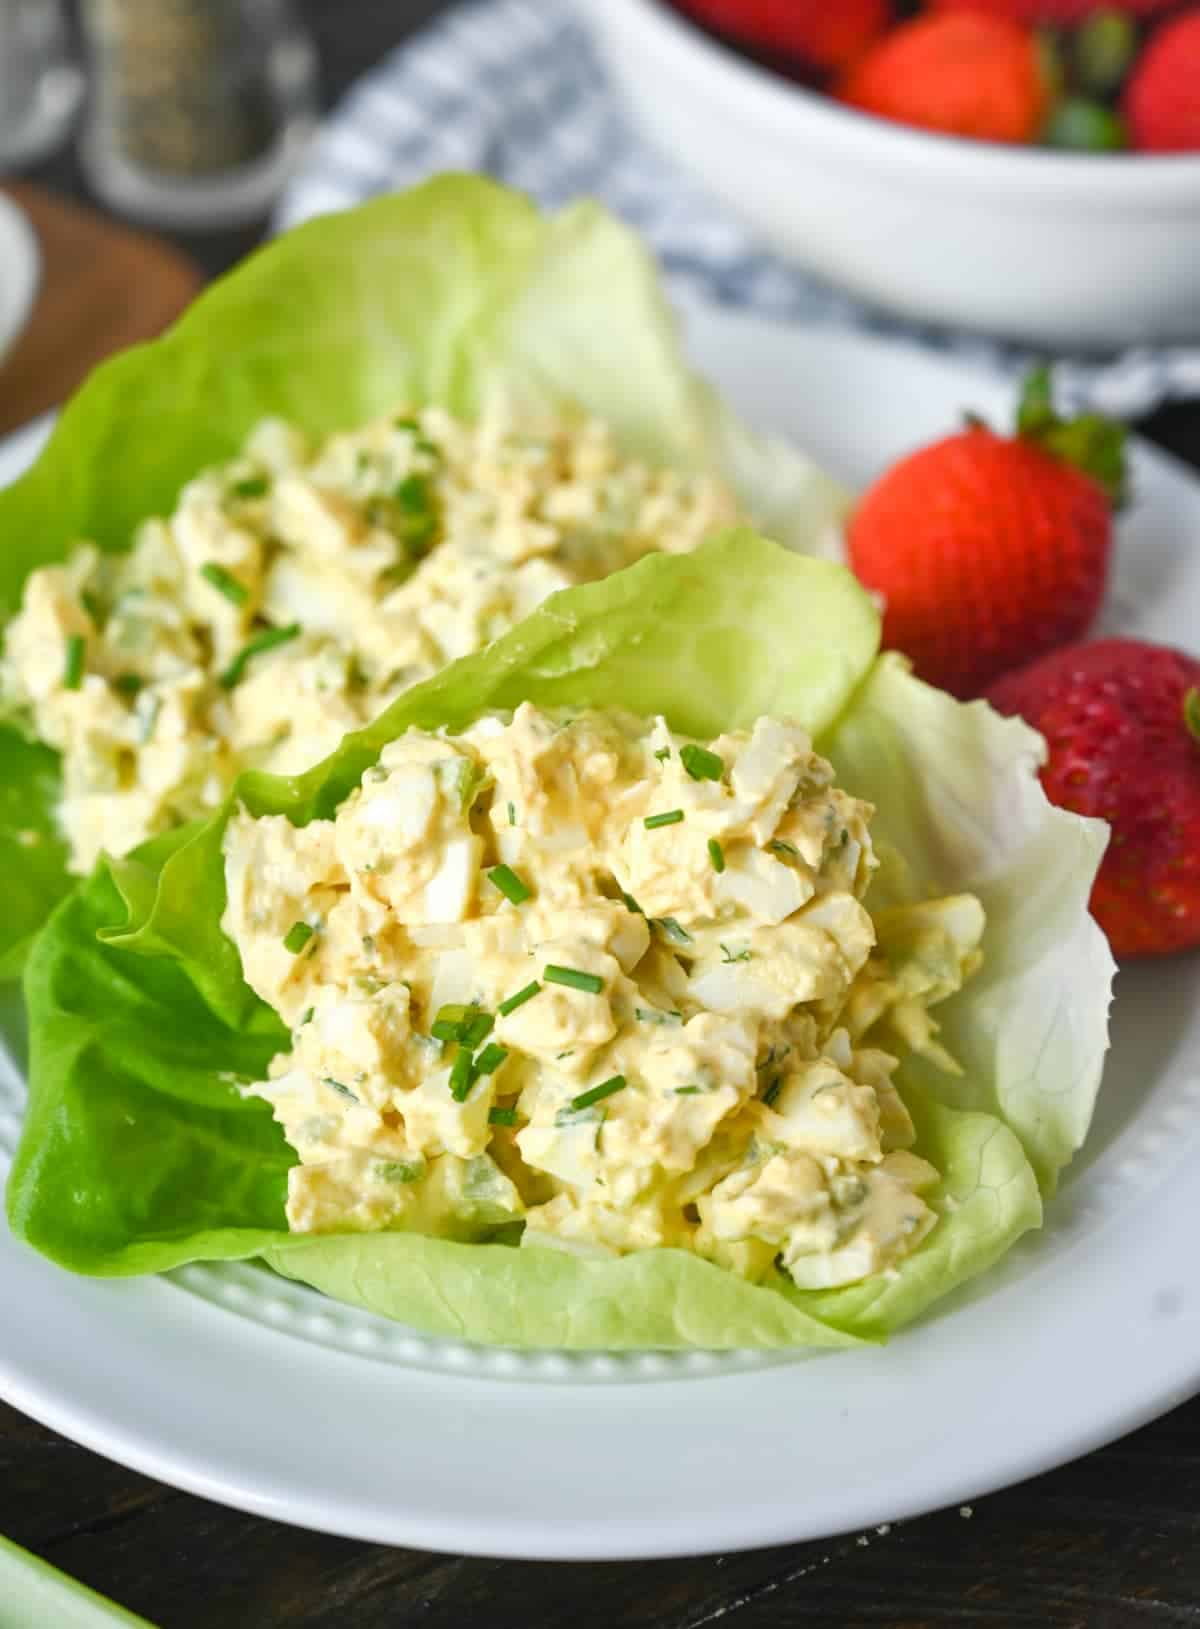 Egg salad place into two lettuce cups.